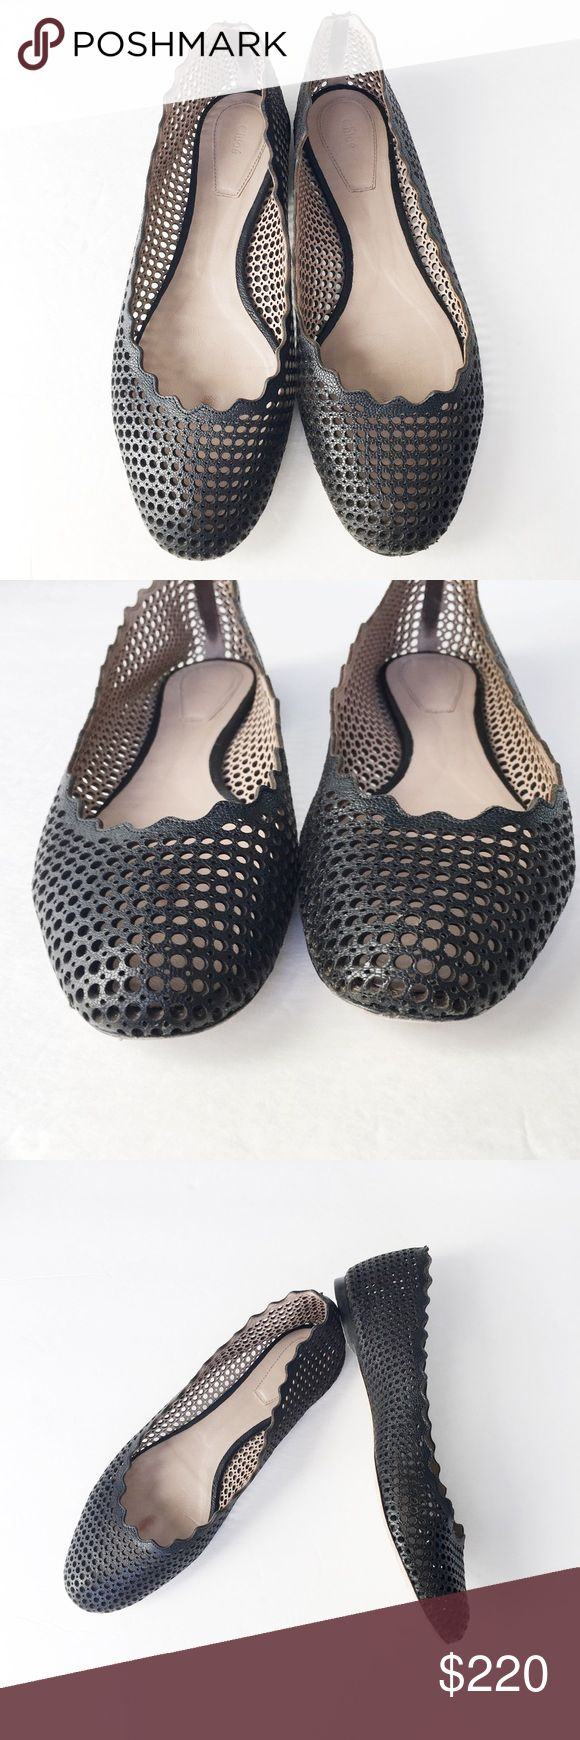 Chloe Perforated Leather Flats Black leather flats by Chloe with scallop detail and Perforated texture. Only signs of wear are to bottoms and a bit inside the shoe, the black leather is superb! Chloe Shoes Flats & Loafers